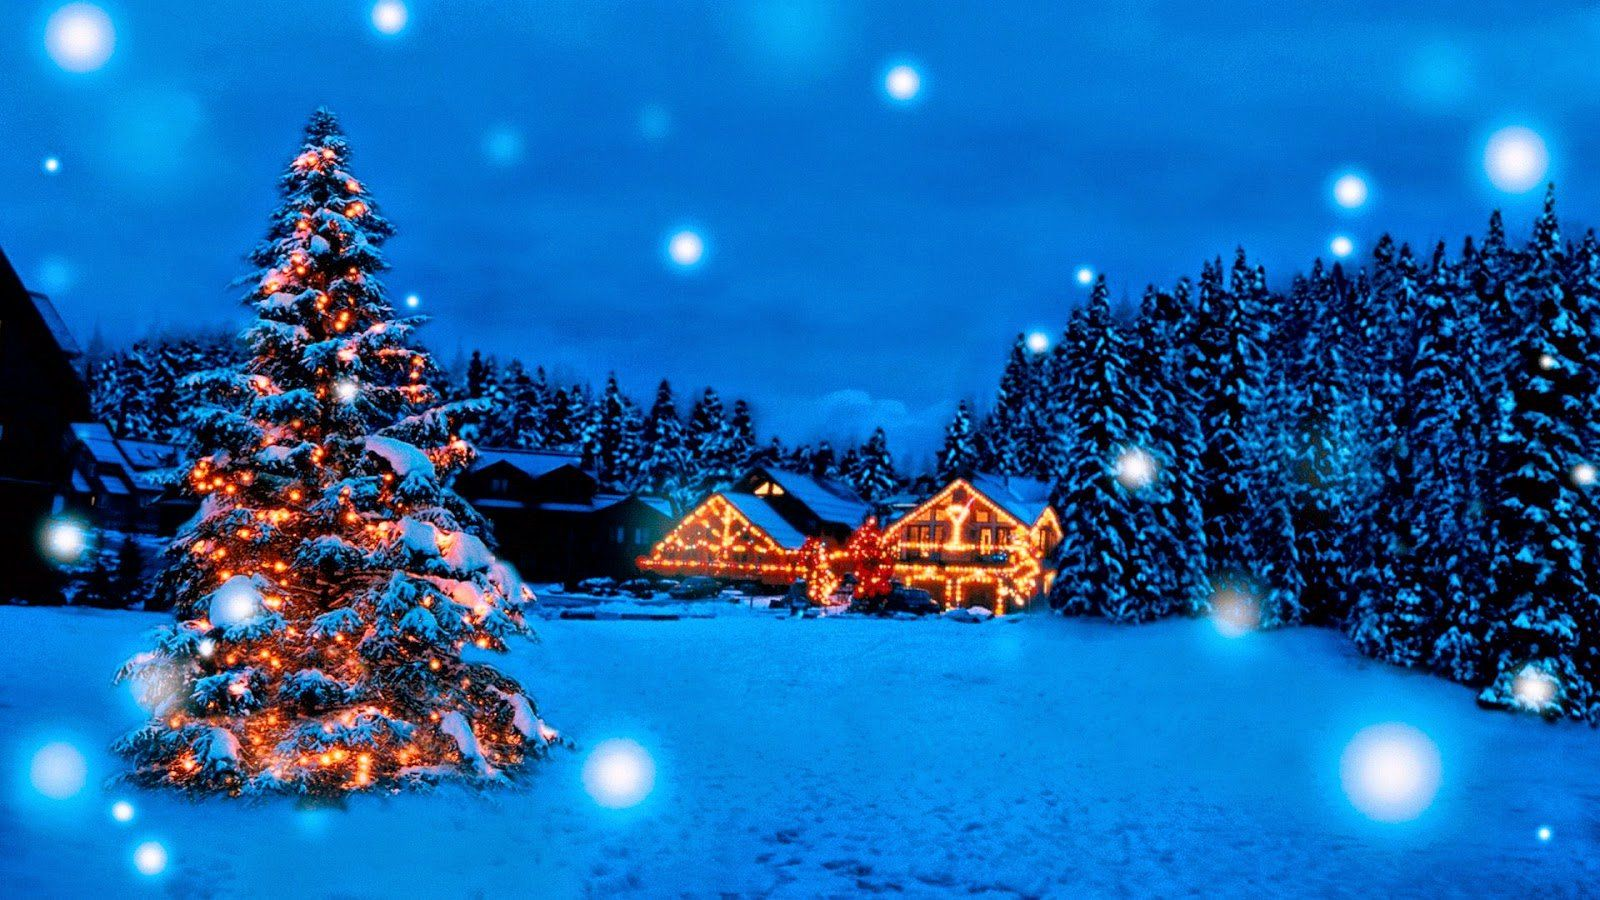 Free Christmas Desktop Wallpaper Luxury Desktop Quality Hd Wallpapers 1080p Free Dow Christmas Desktop Wallpaper Christmas Desktop Christmas Background Desktop